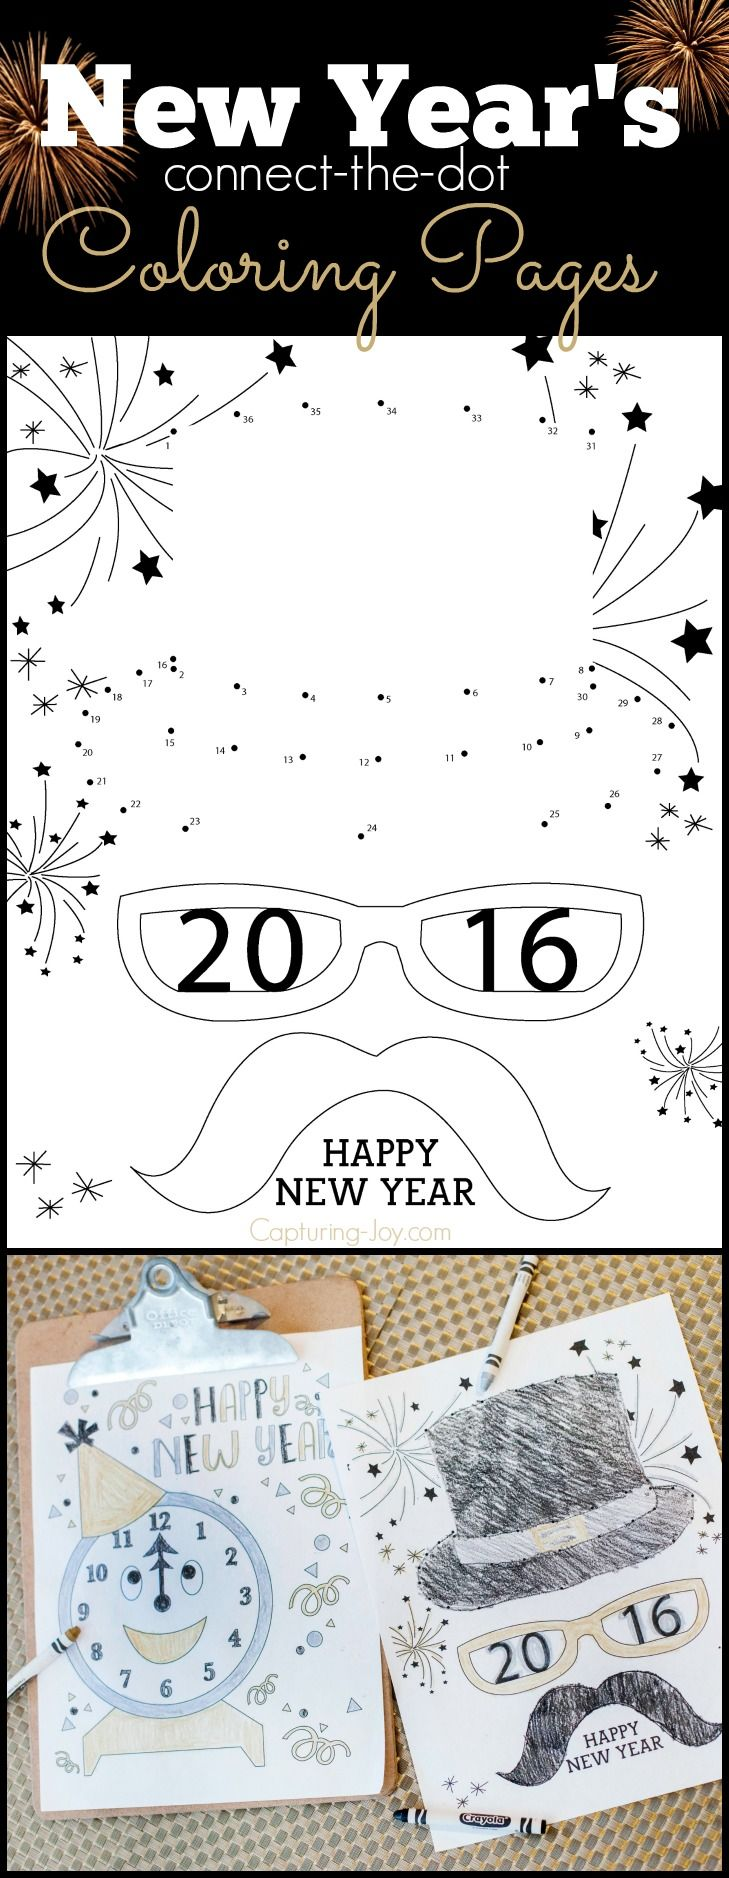 Free printable New Years Connect the Dot coloring pages! Perfect for kids! Grab it on Capturing-Joy.com